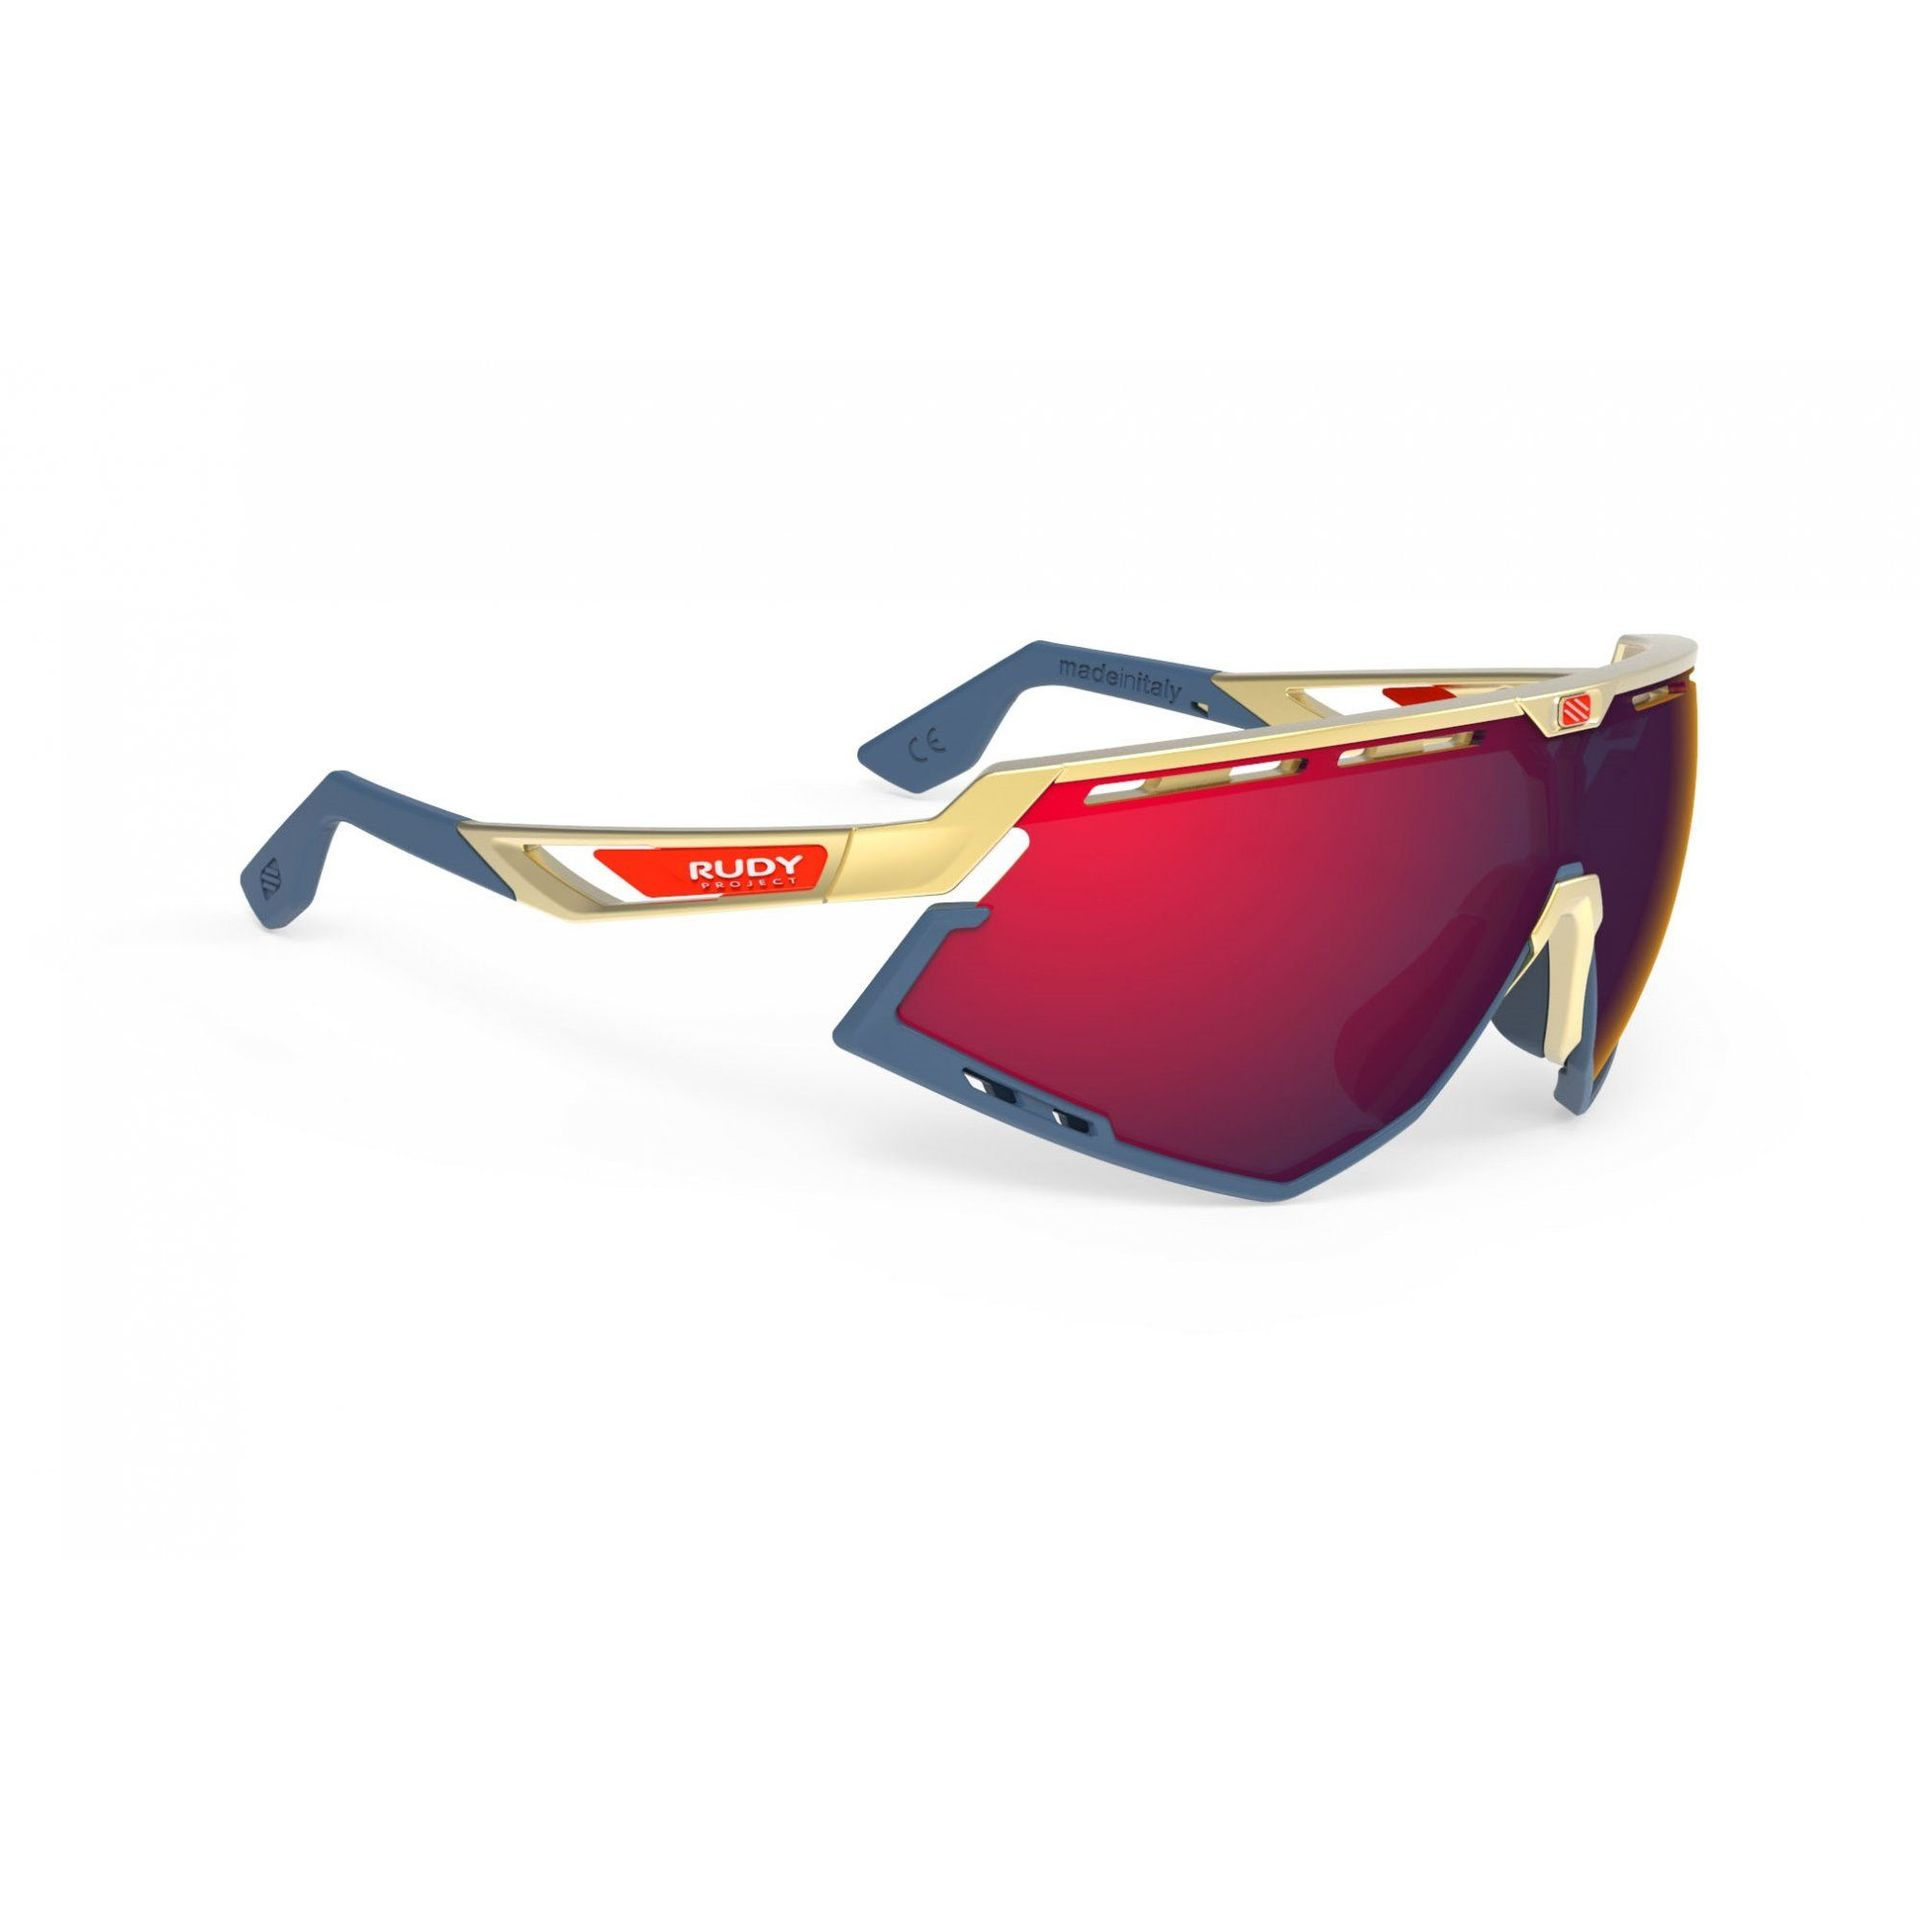 OKULARY RUDY PROJECT DEFENDER GOLD|NAVY + MULTILASER RED SP523805 1